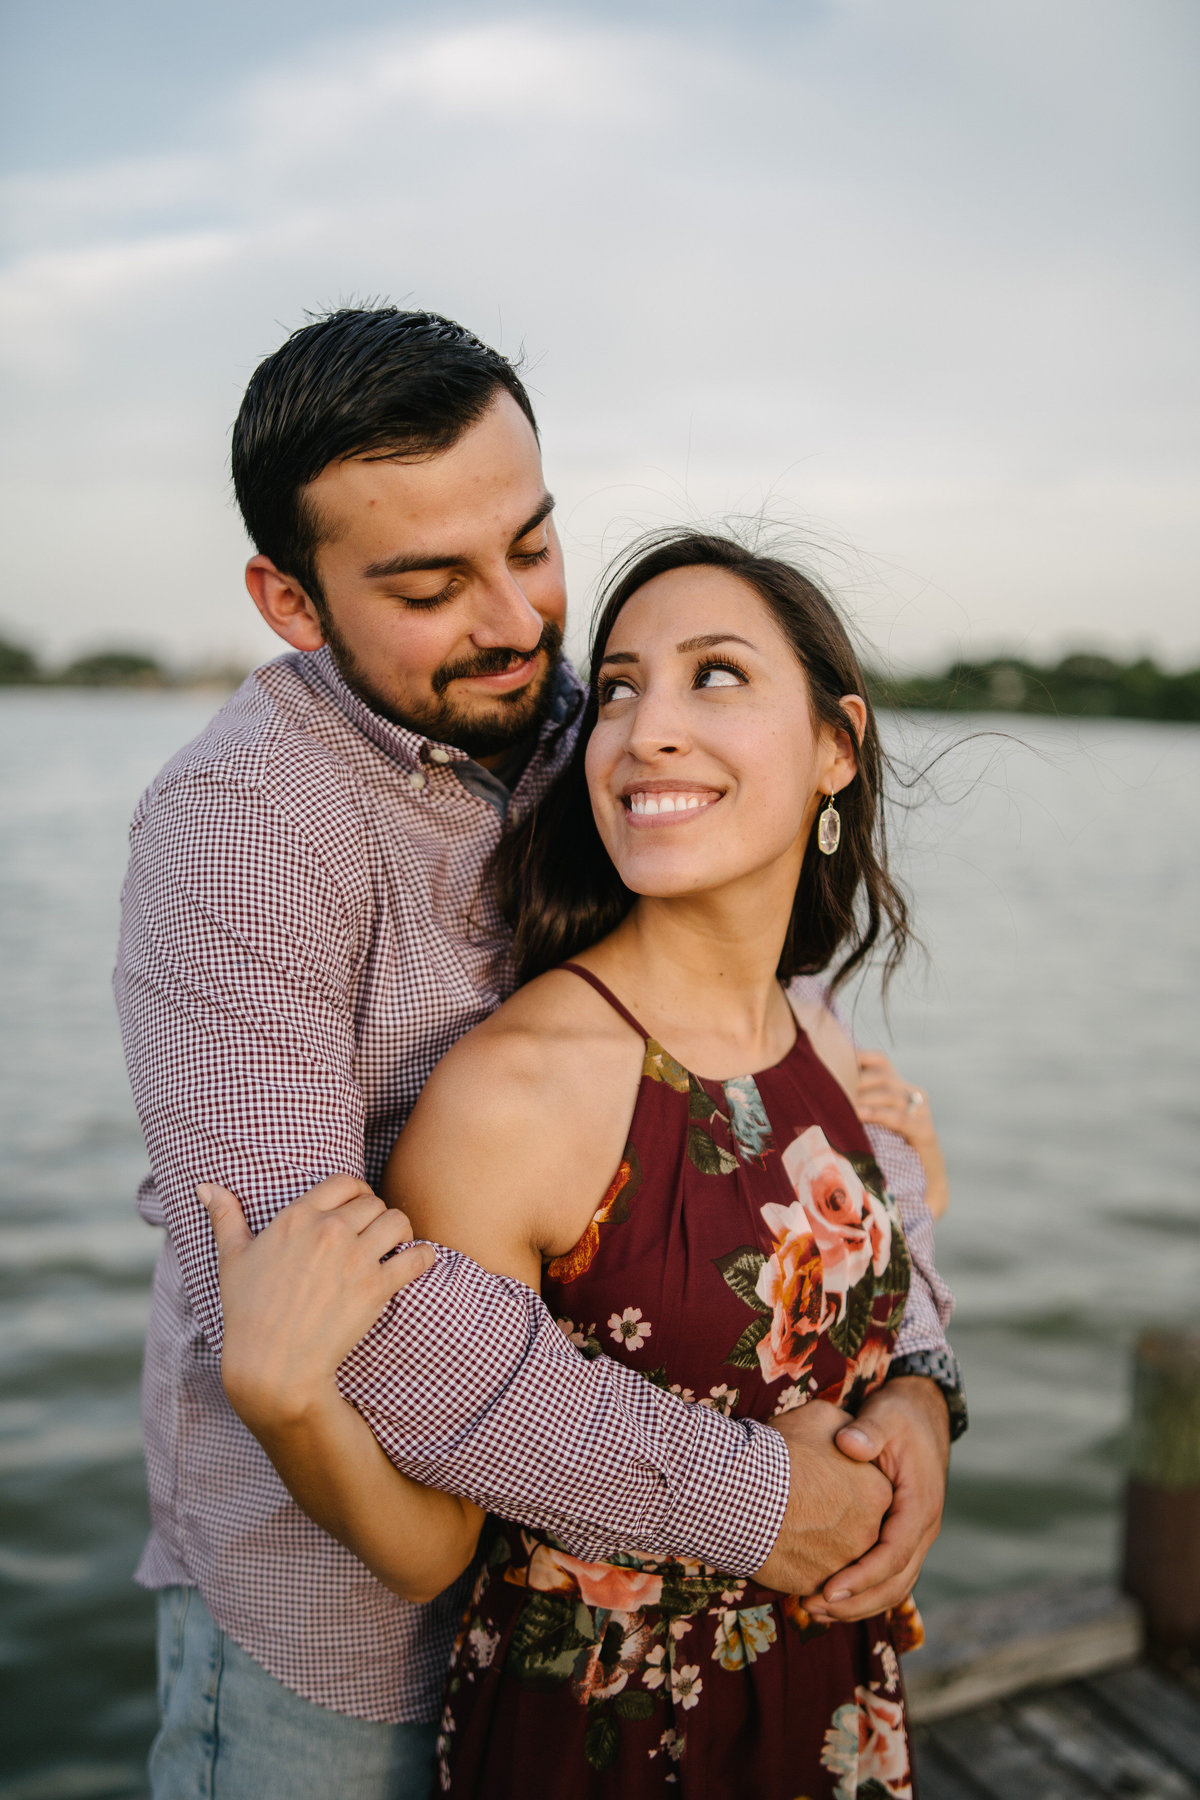 Fiancé is holding his bride to be on a wooden pier at Woodlawn Lake in San Antonio. They are engaged and soon to be married.